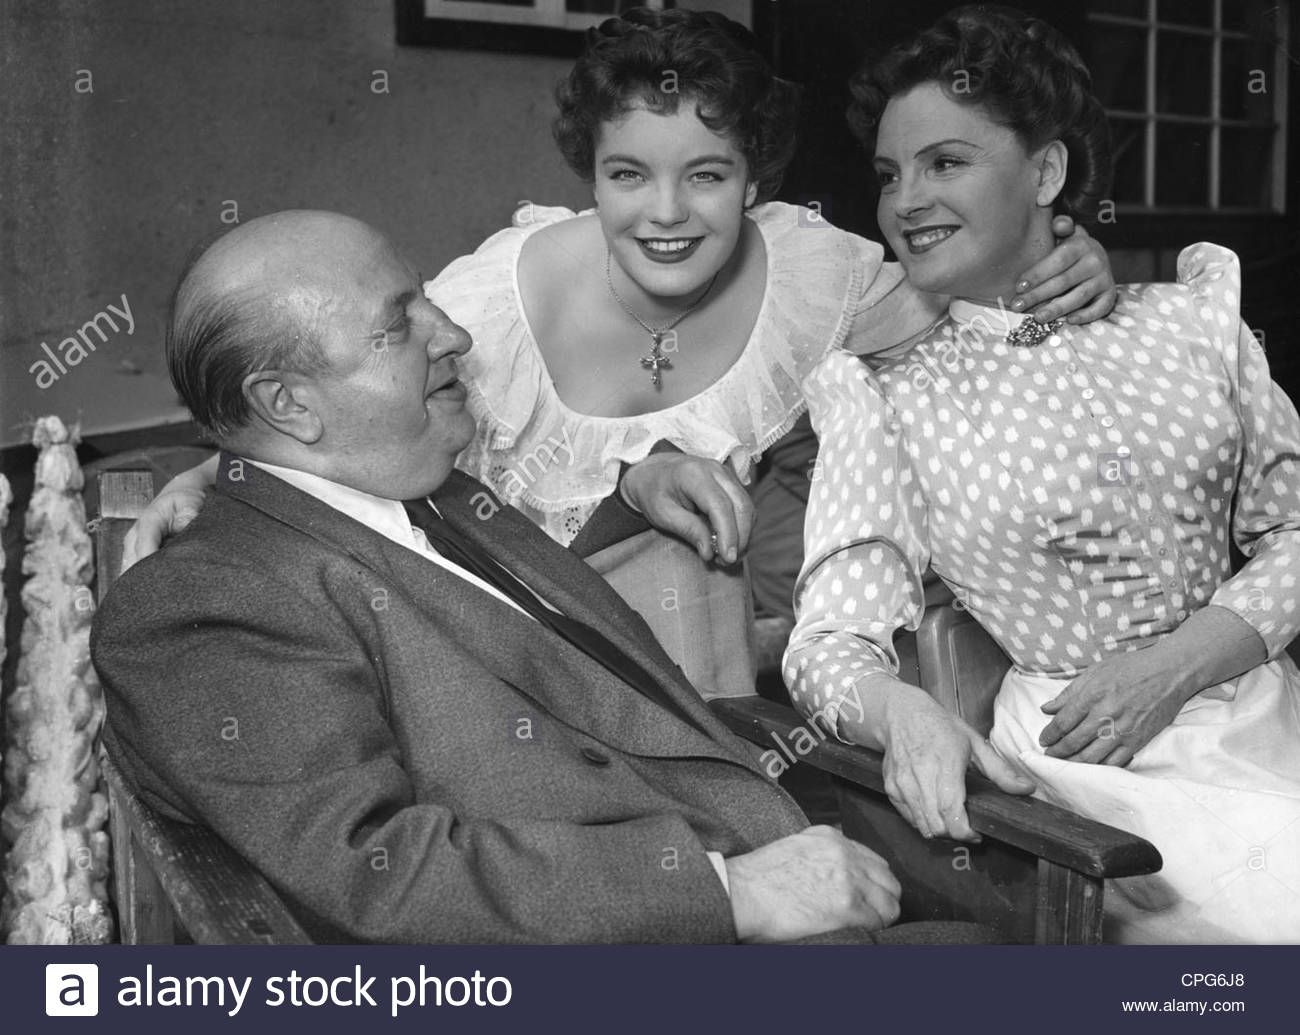 Download this stock image: Marischka, Ernst, 2.1.1893 - 12.5.1963, Austrian director, half length, with Romy and Magda Schneider, during making of: A Marc - CPG6J8 from Alamy's library of millions of high resolution stock photos, illustrations and vectors.